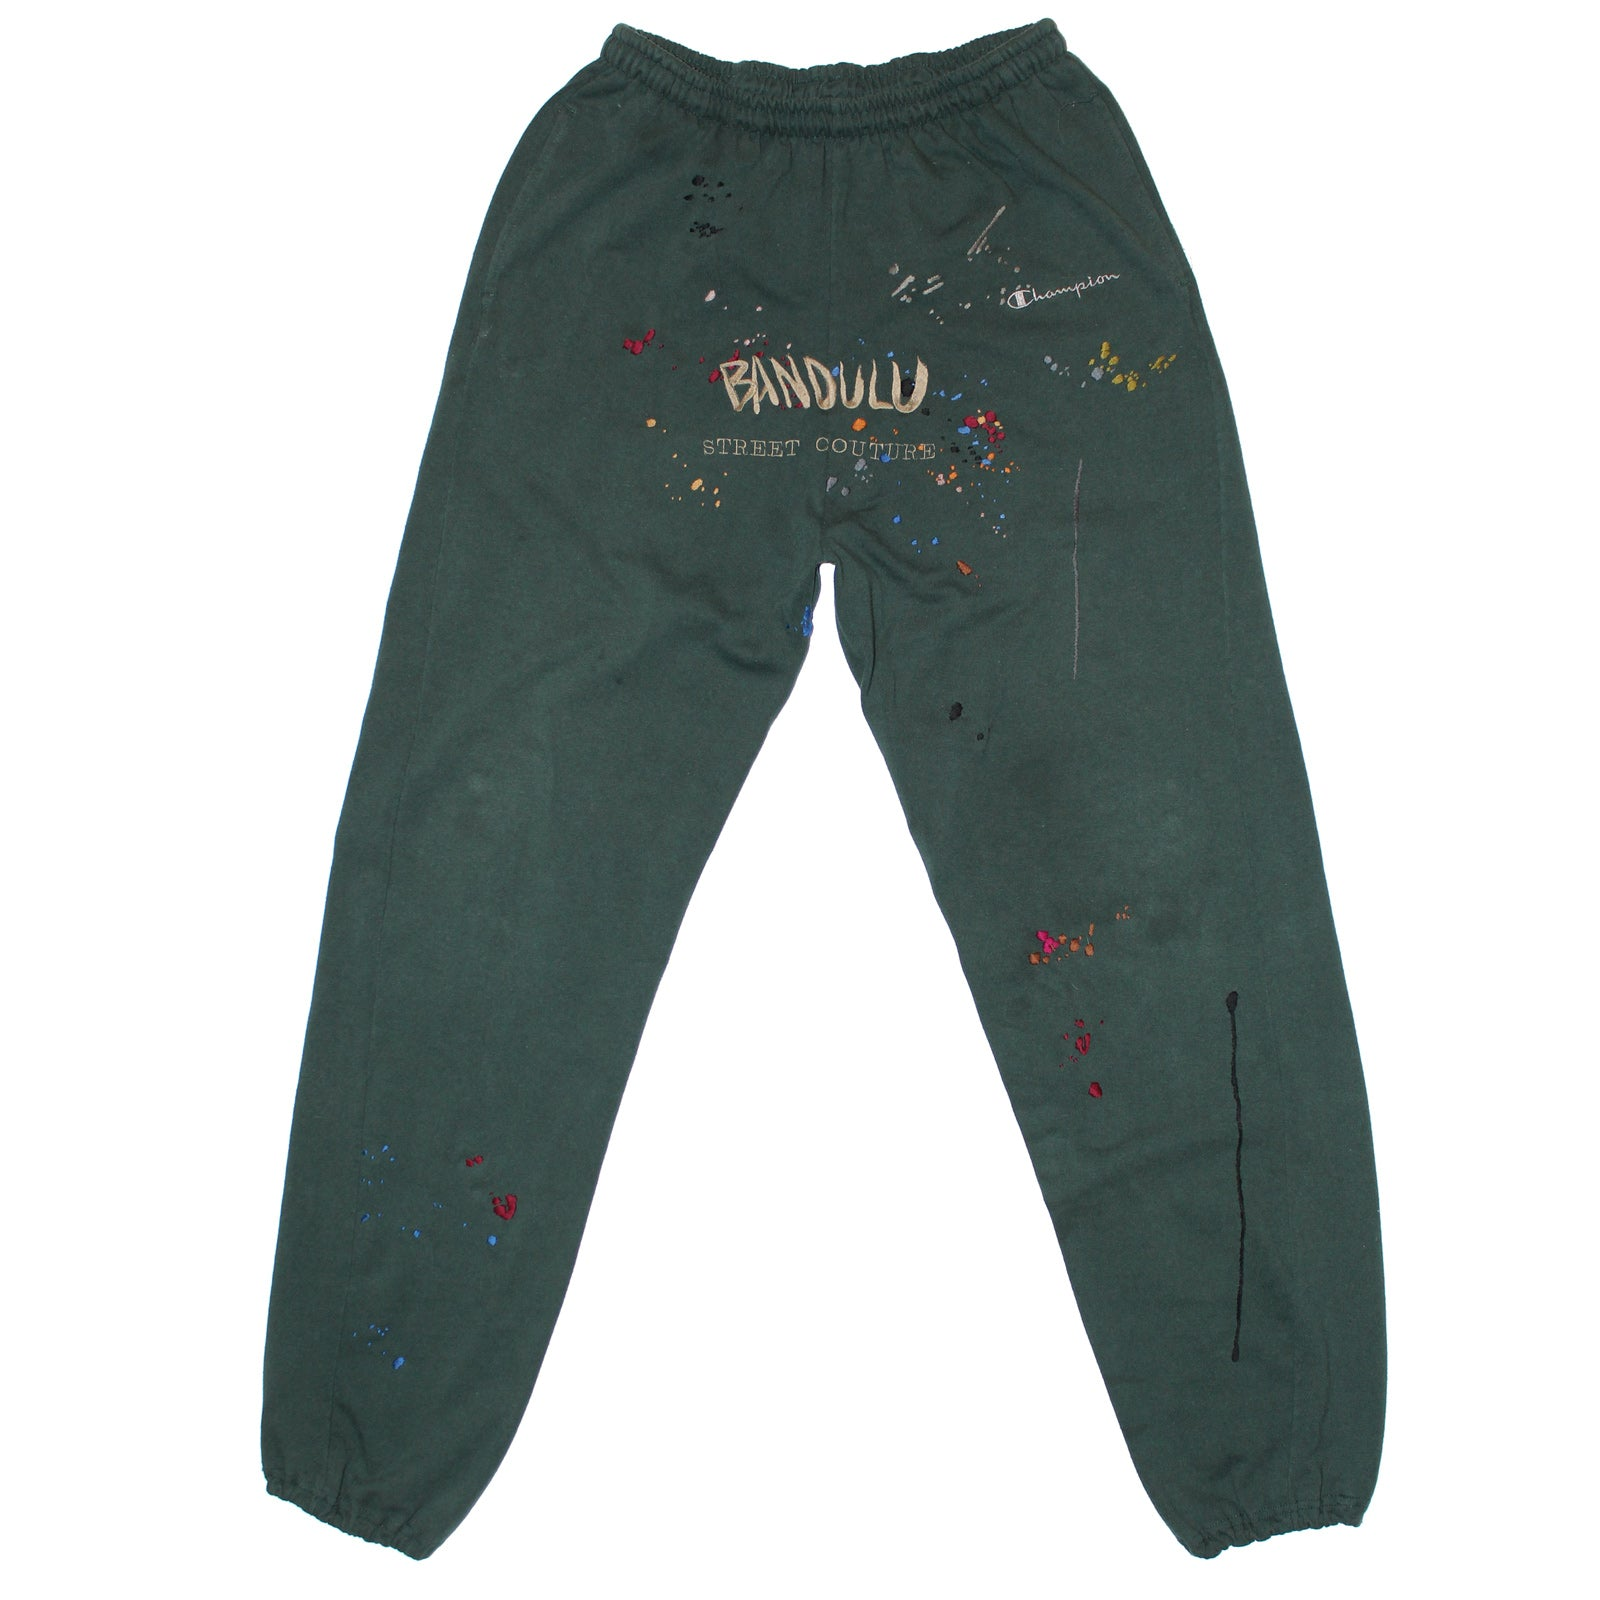 "BANDULU ""FOREST THRU THE TREES"" VINTAGE CHAMPION SWEATS"